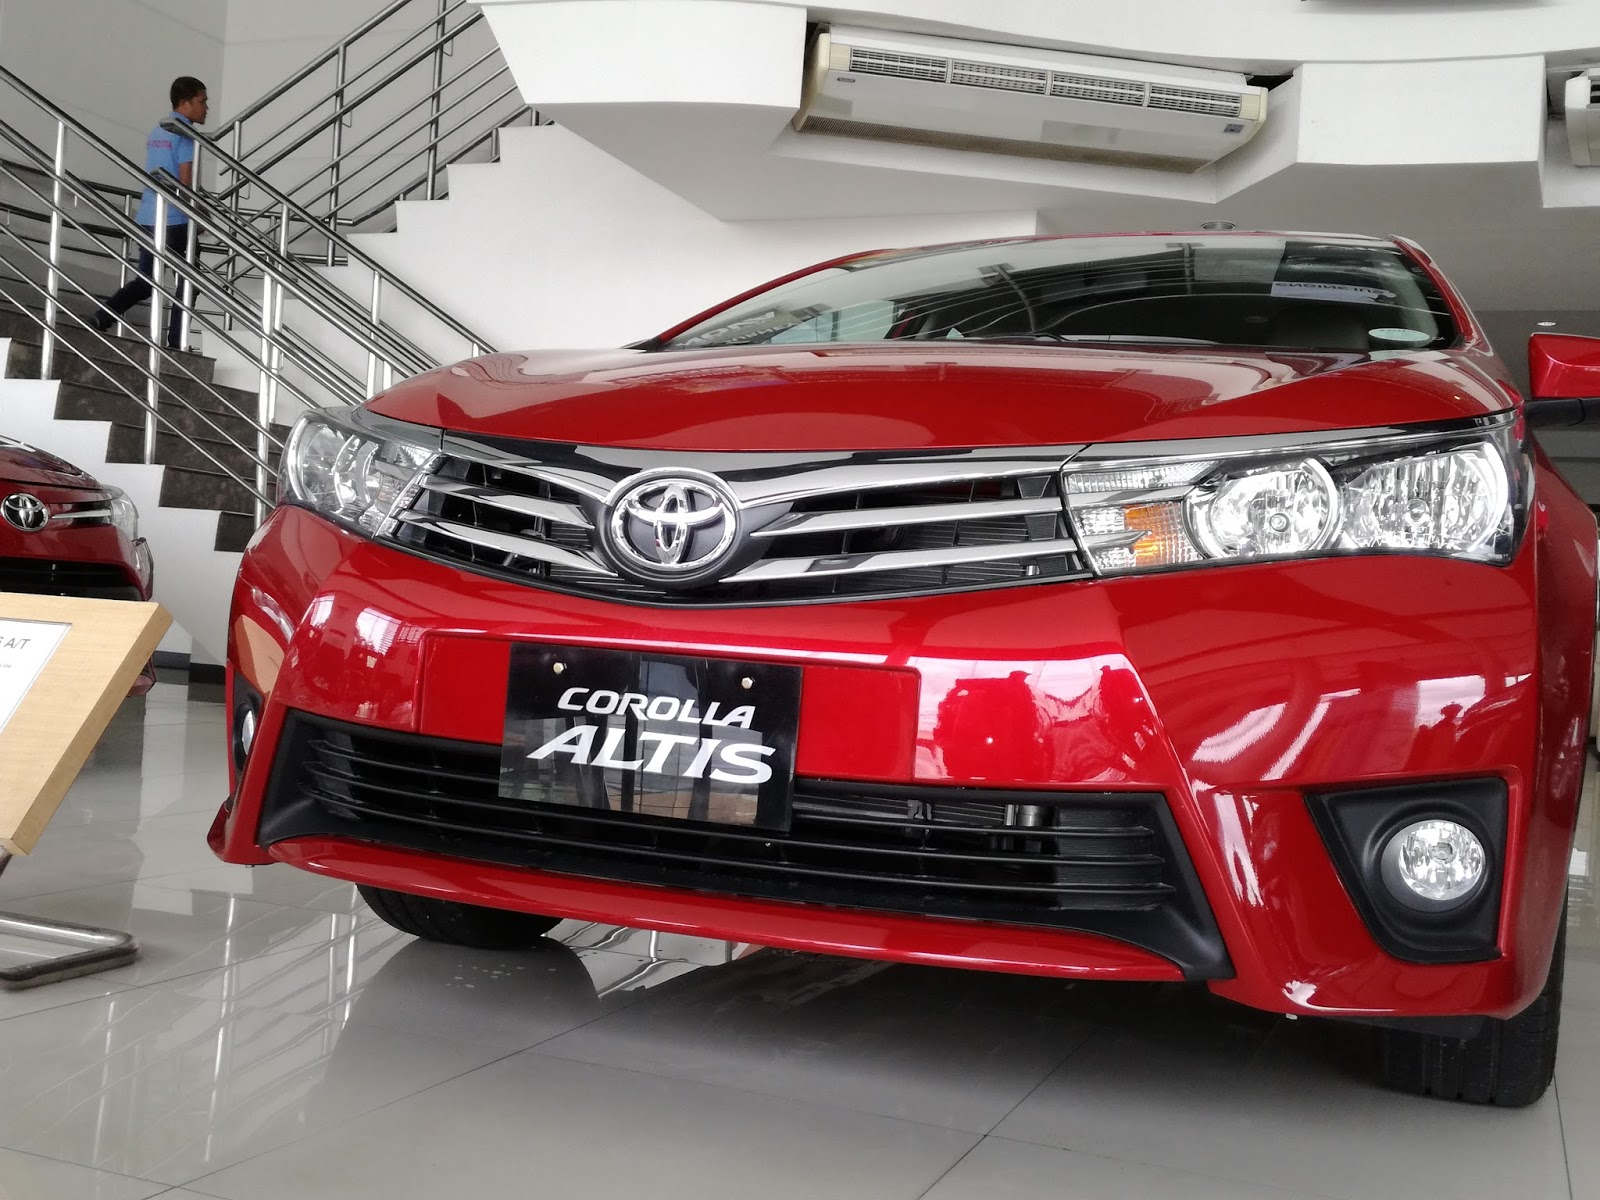 Brand New Toyota Altis For Sale Philippines Spesifikasi Grand Veloz 1.3 2016 Corolla 1 6 G Automatic Iloilo Inc Let S See What The Can Do And Find Out If Waku Doki Dna That Has Infused Into Car Deliver Heart Pounting